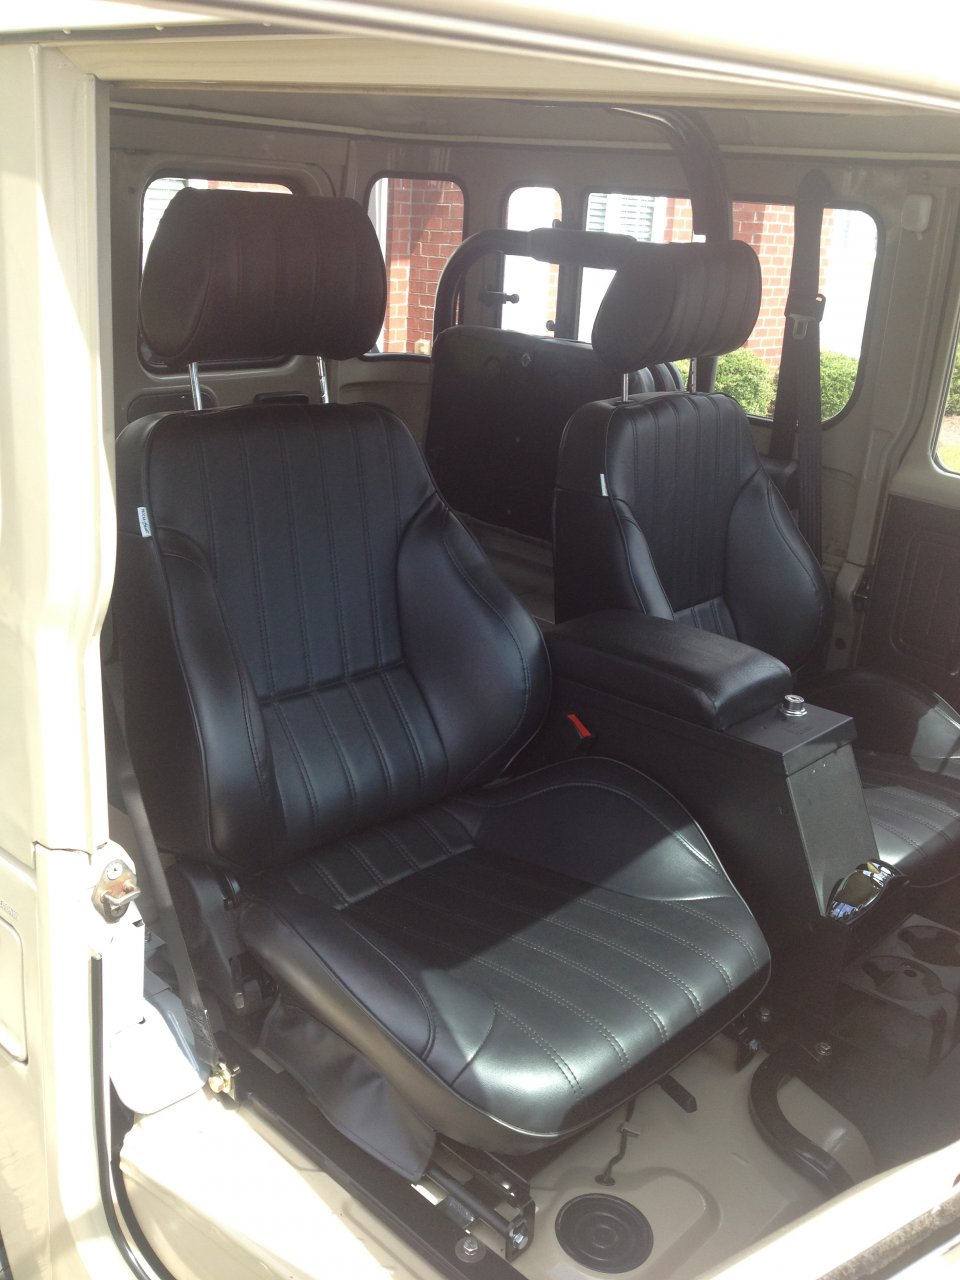 Tampa Truck Center >> Narrow good looking center console idea please not Smitty or Tuffy. | IH8MUD Forum